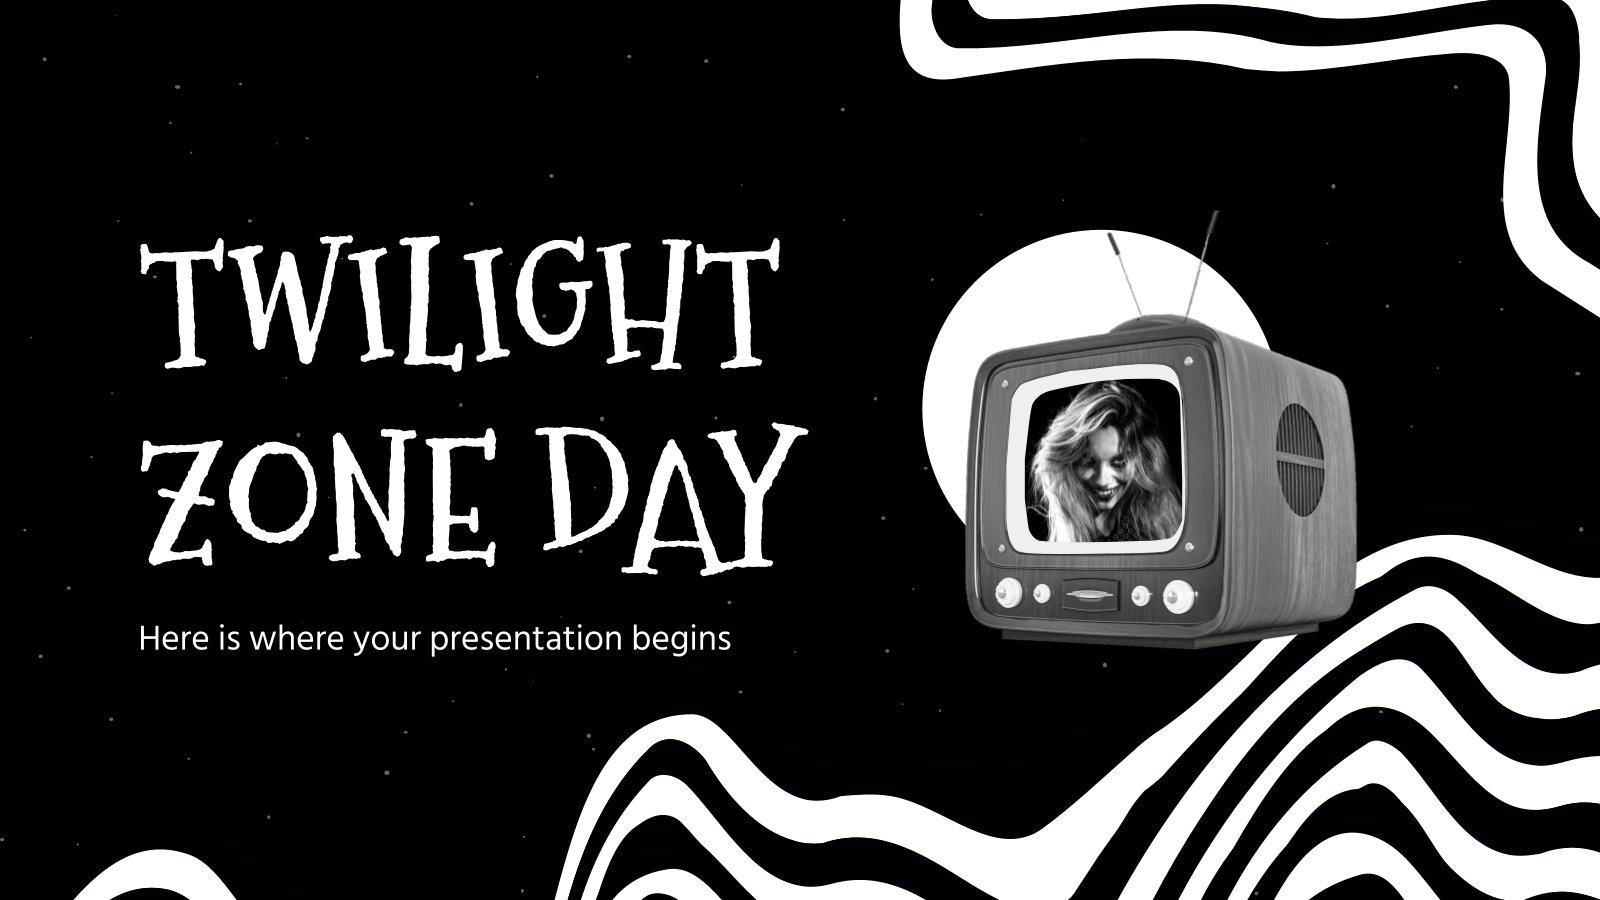 Twilight Zone Day presentation template